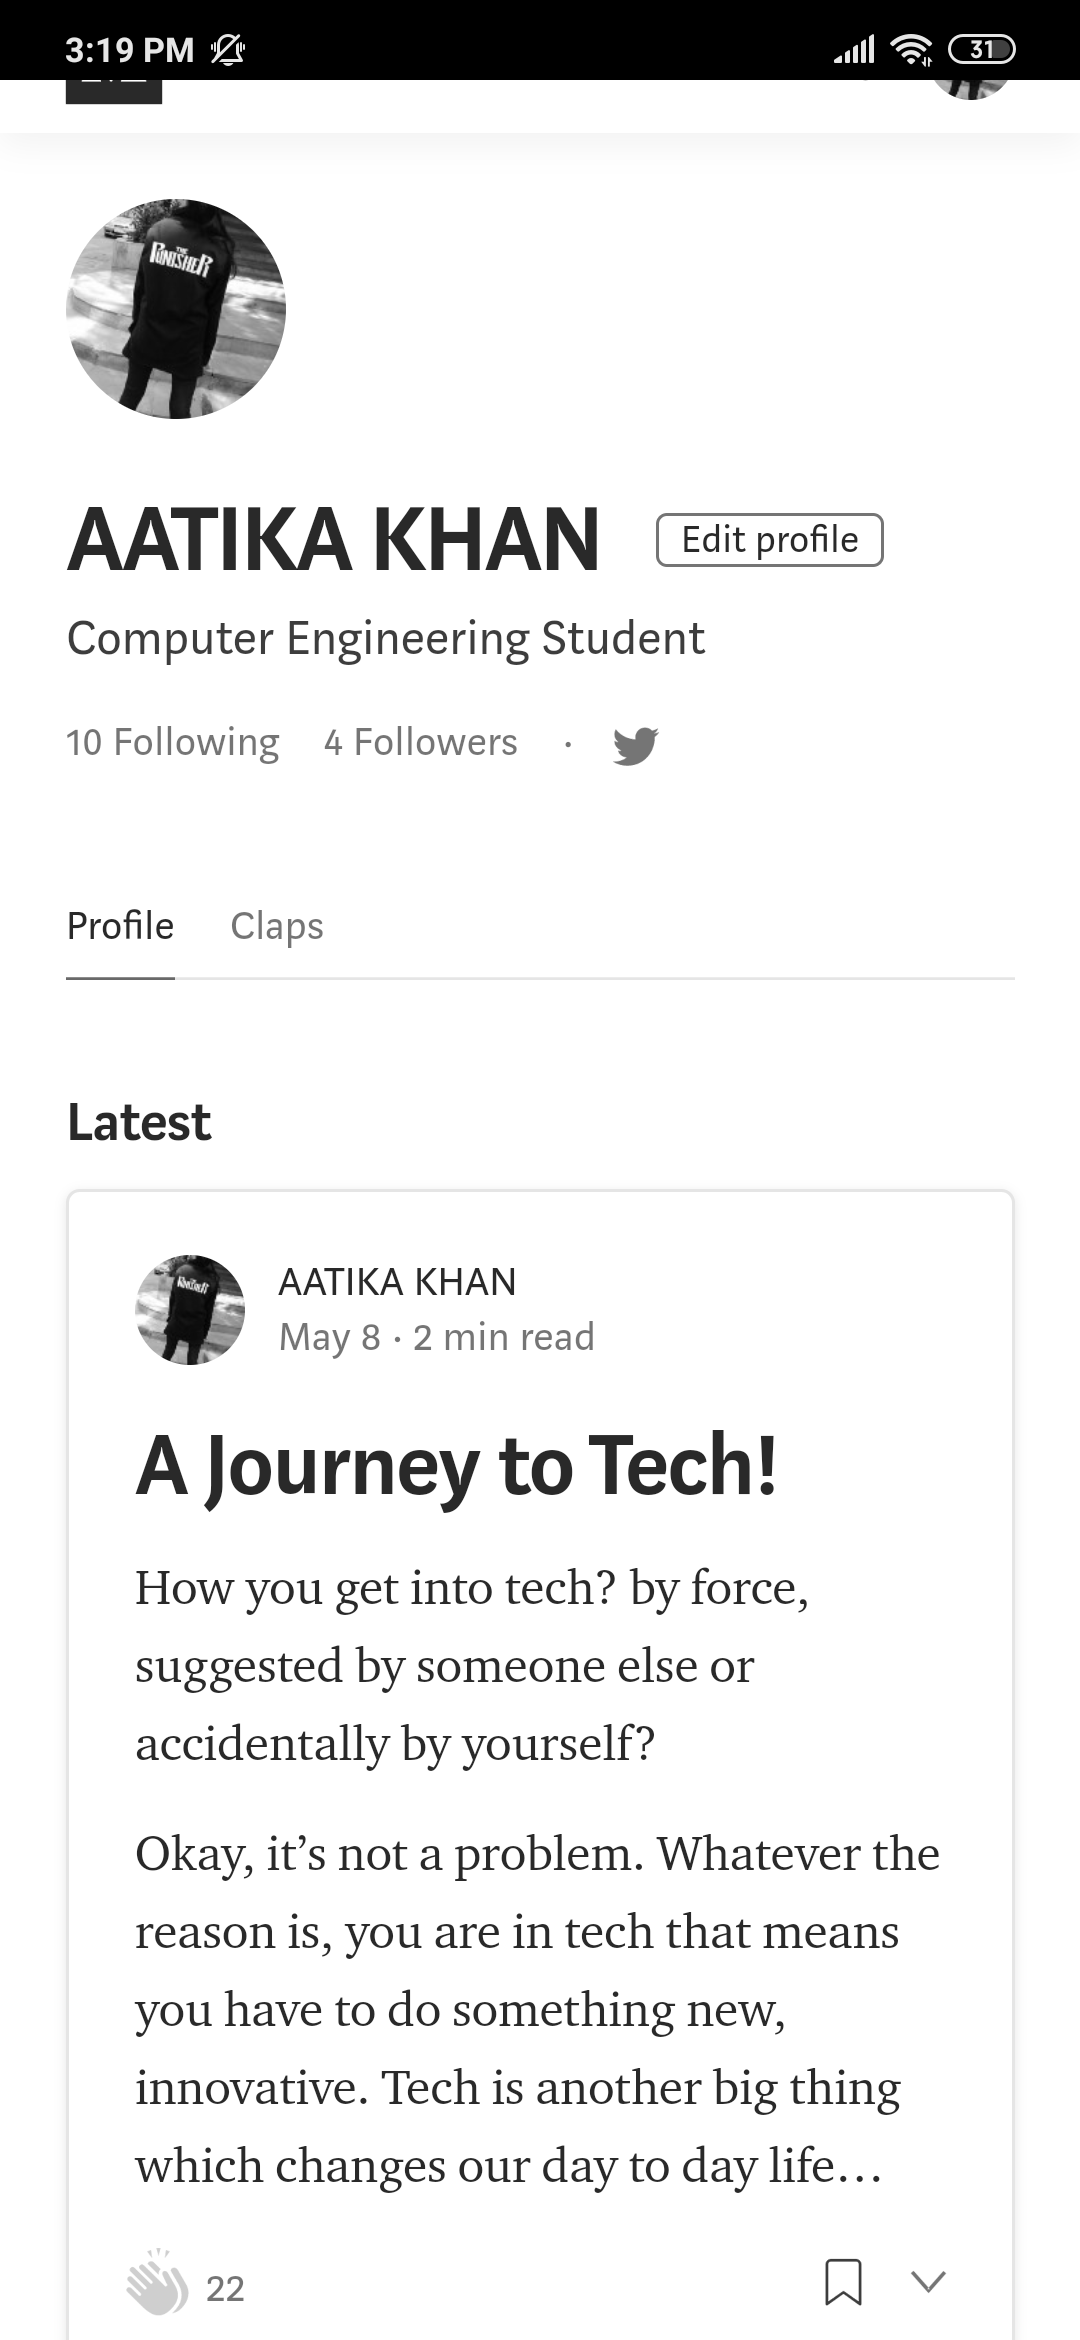 A journey to tech